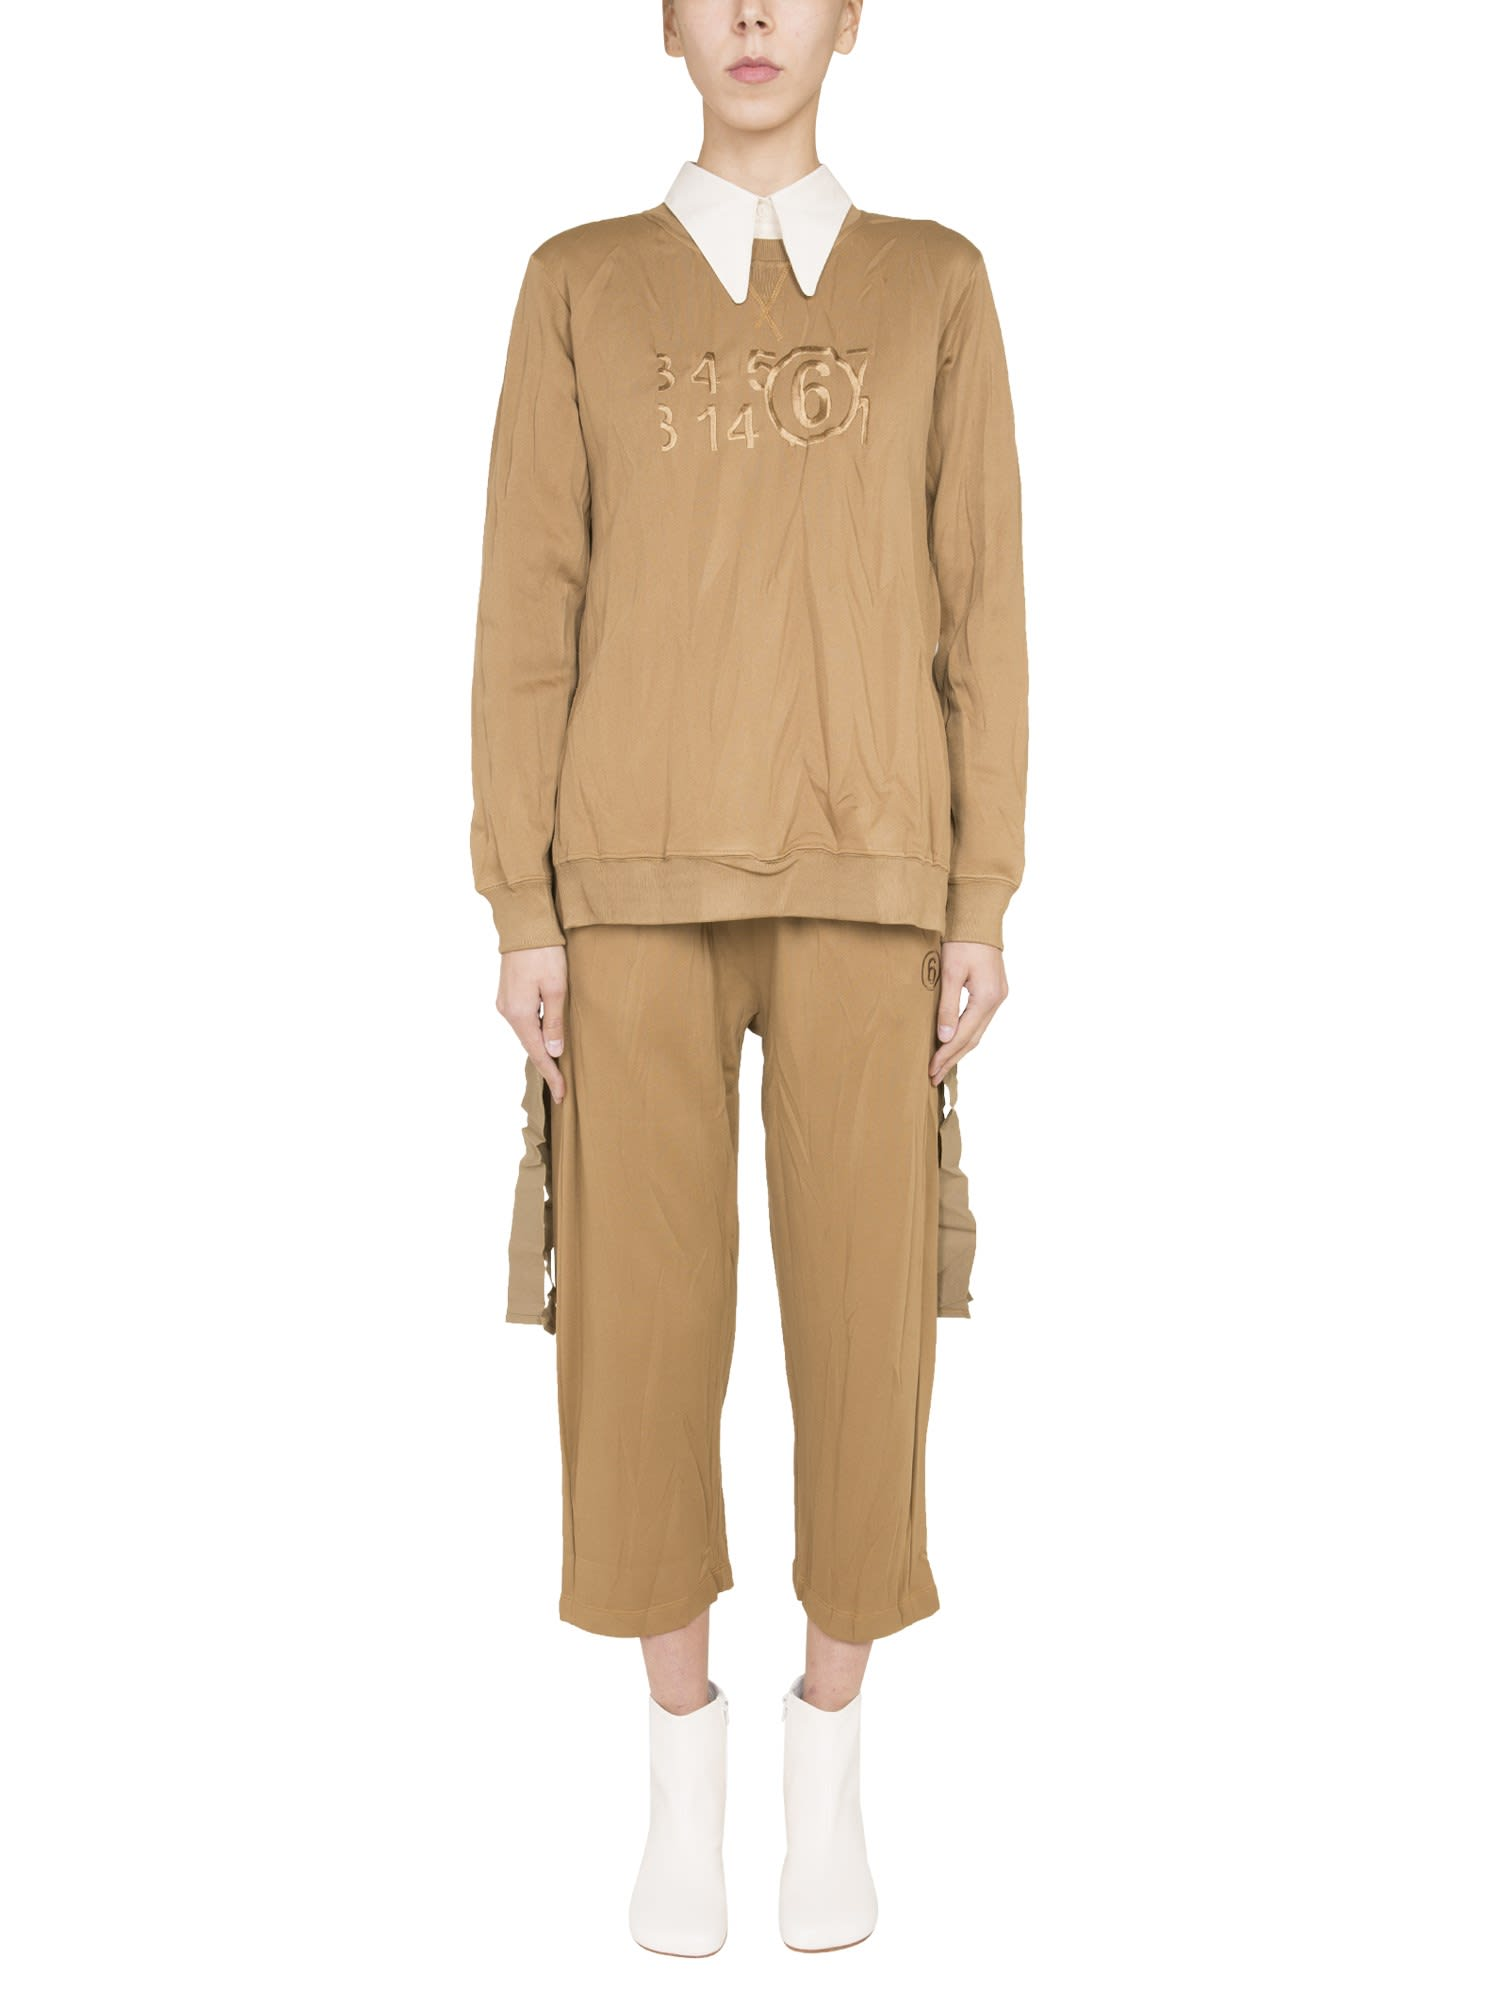 MM6 MAISON MARGIELA OVERSIZE FIT SWEATSHIRT